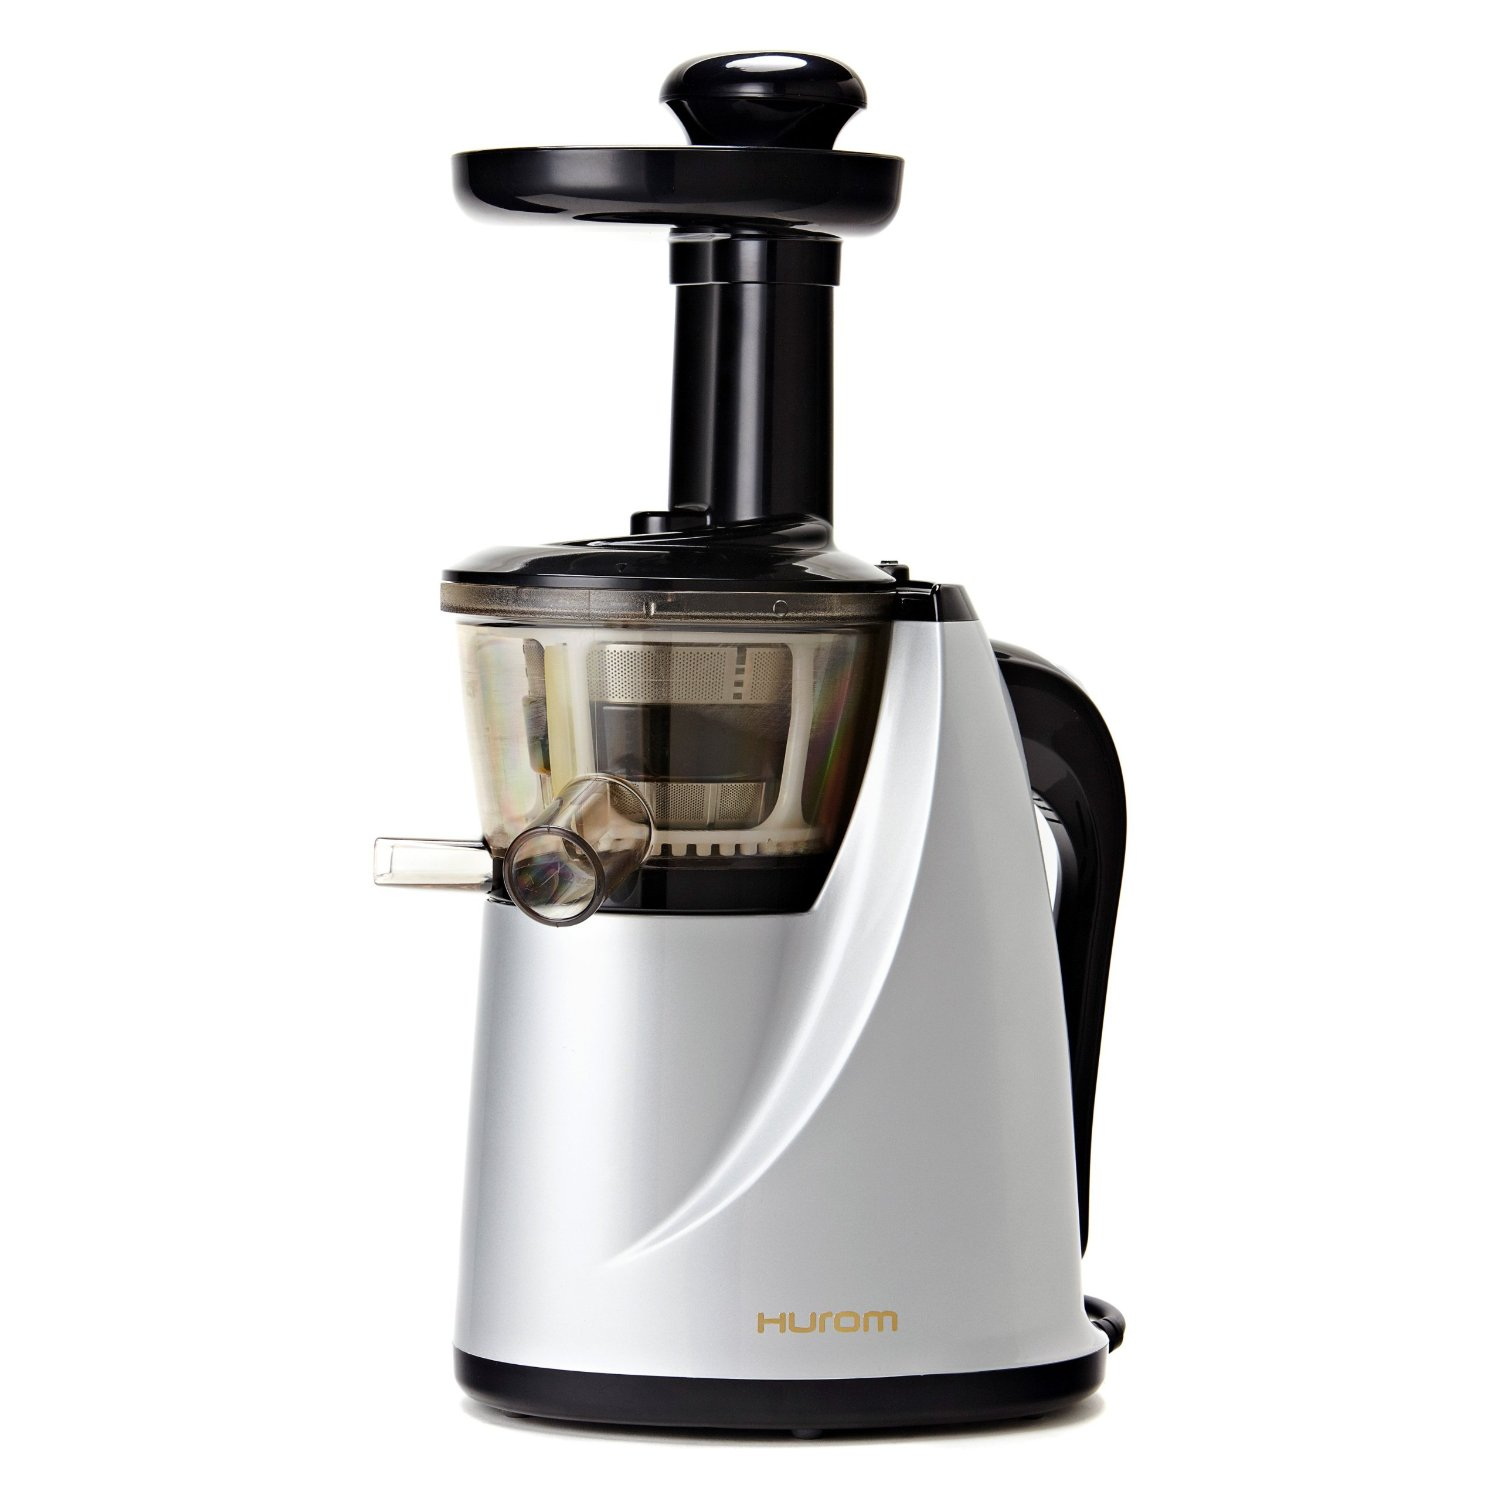 Top Slow Juicer Reviews : Hurom HU-100 Masticating Slow Juicer Review - Best Cold Press Juicers